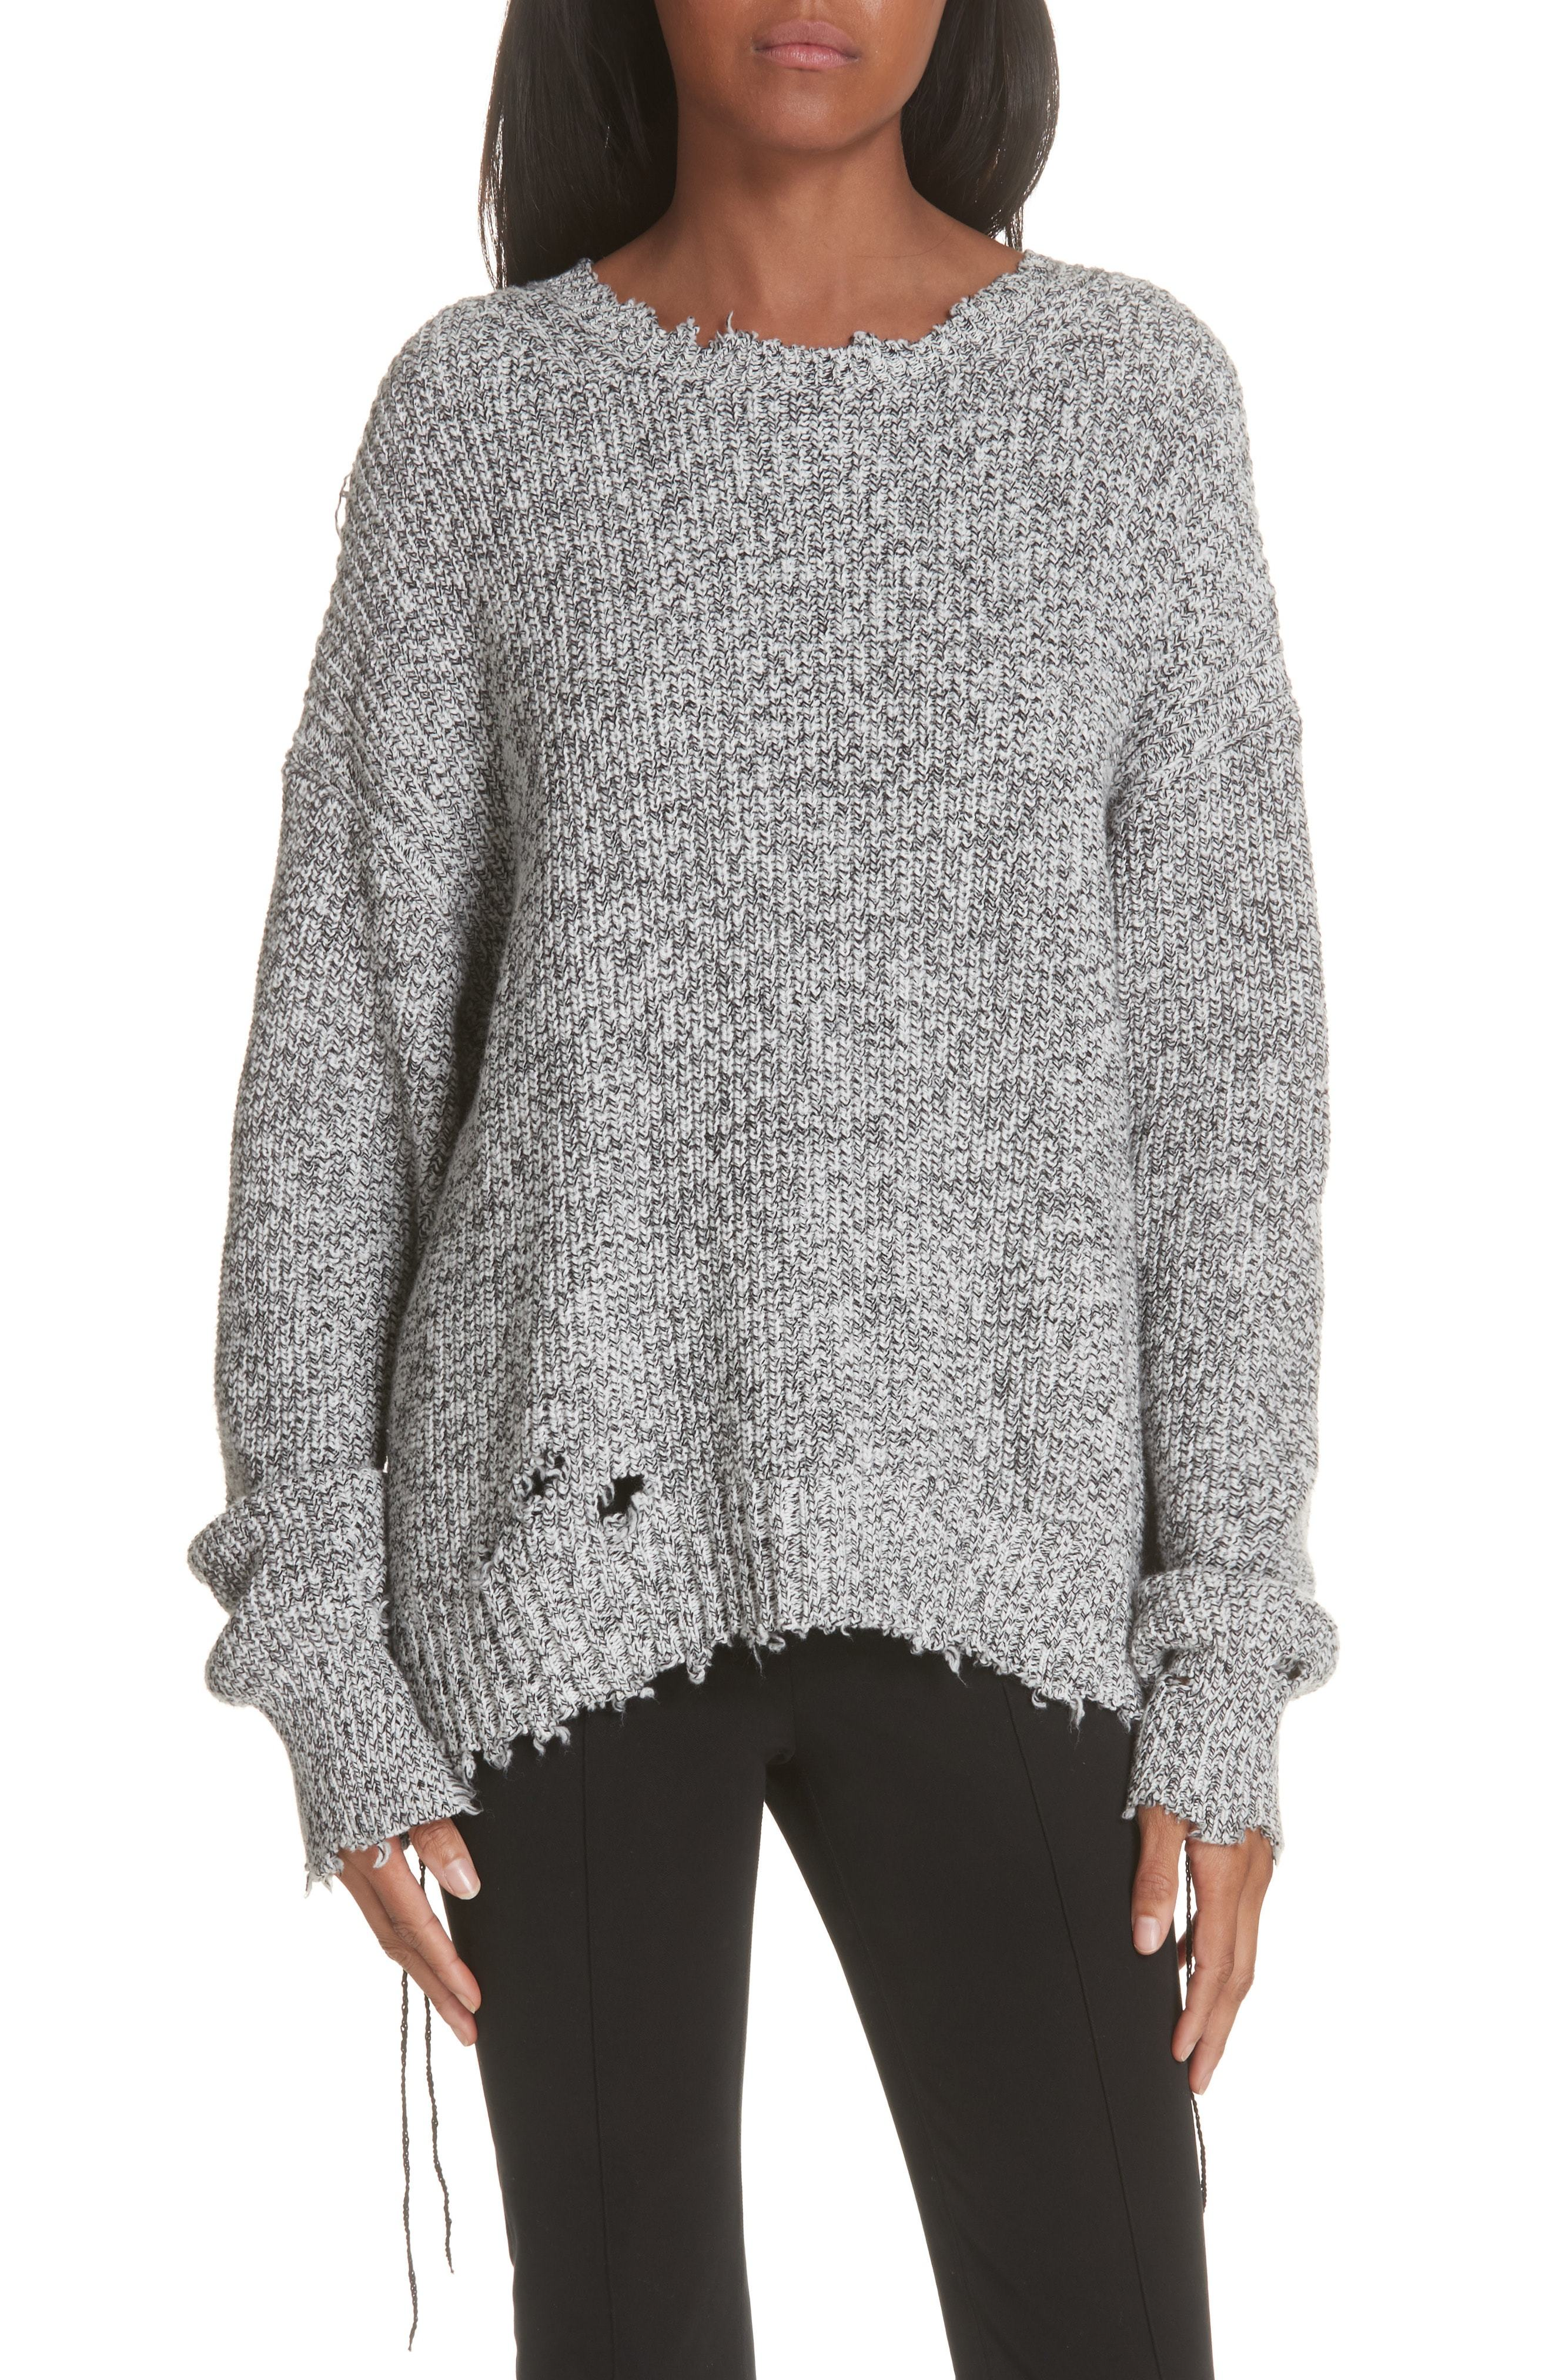 ... Oversized Sweaters Helmut Lang Distressed Sweater 03399396a